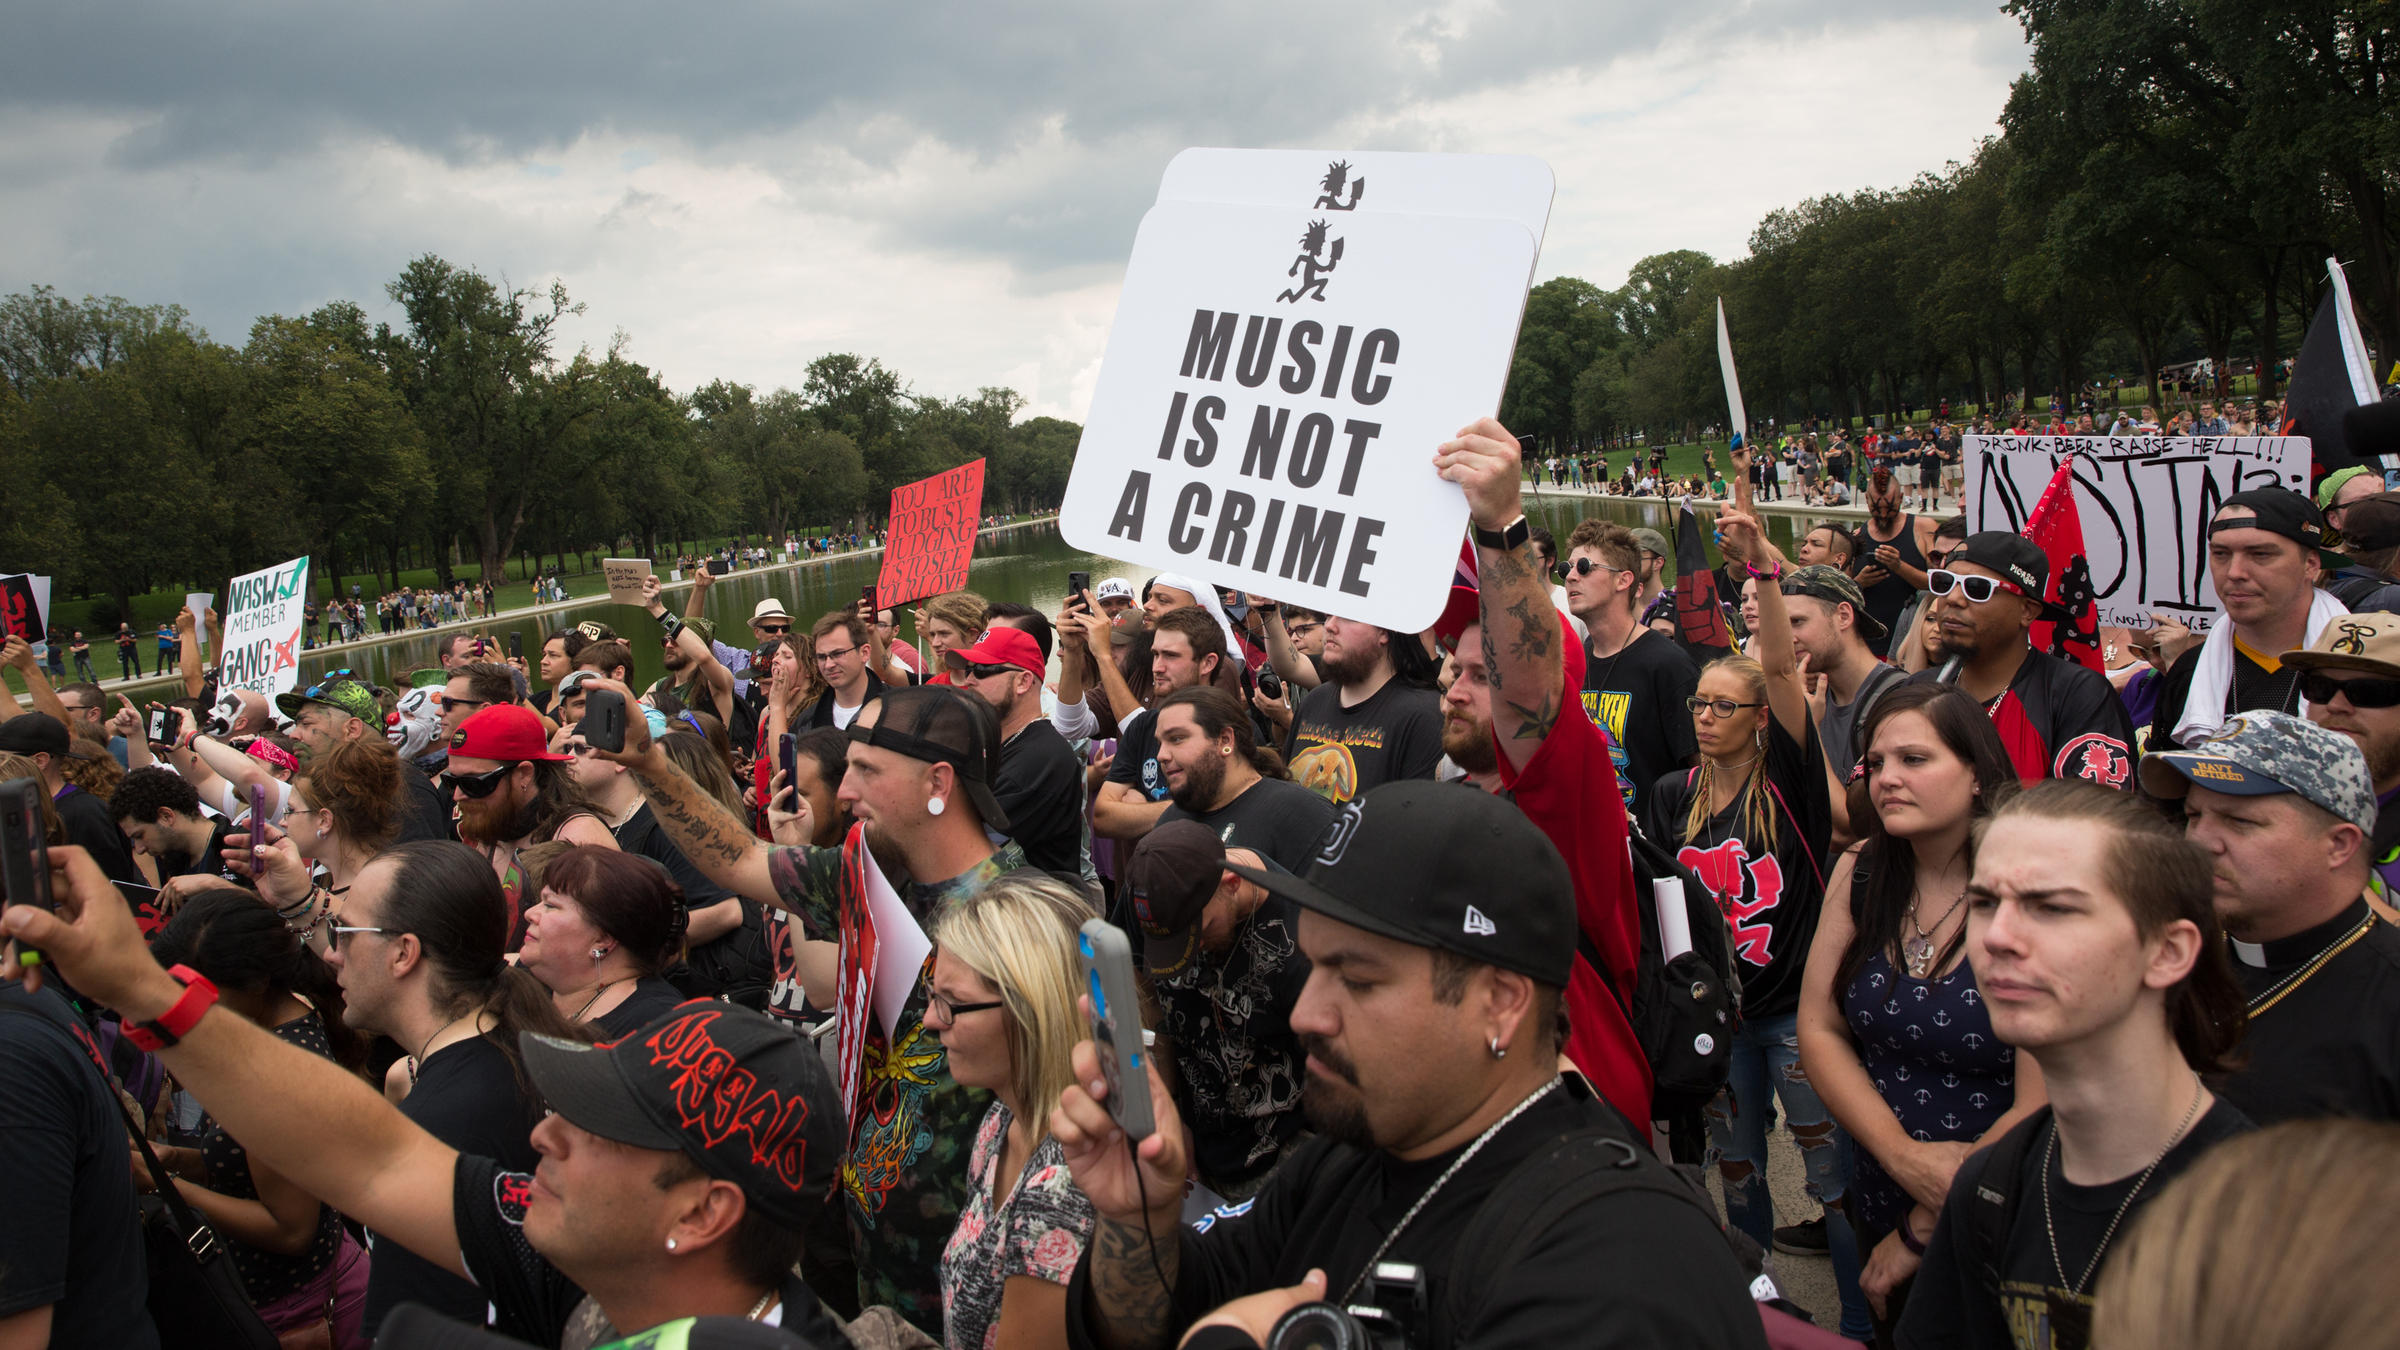 Juggalos rally in Washington, DC to protest unfair treatment